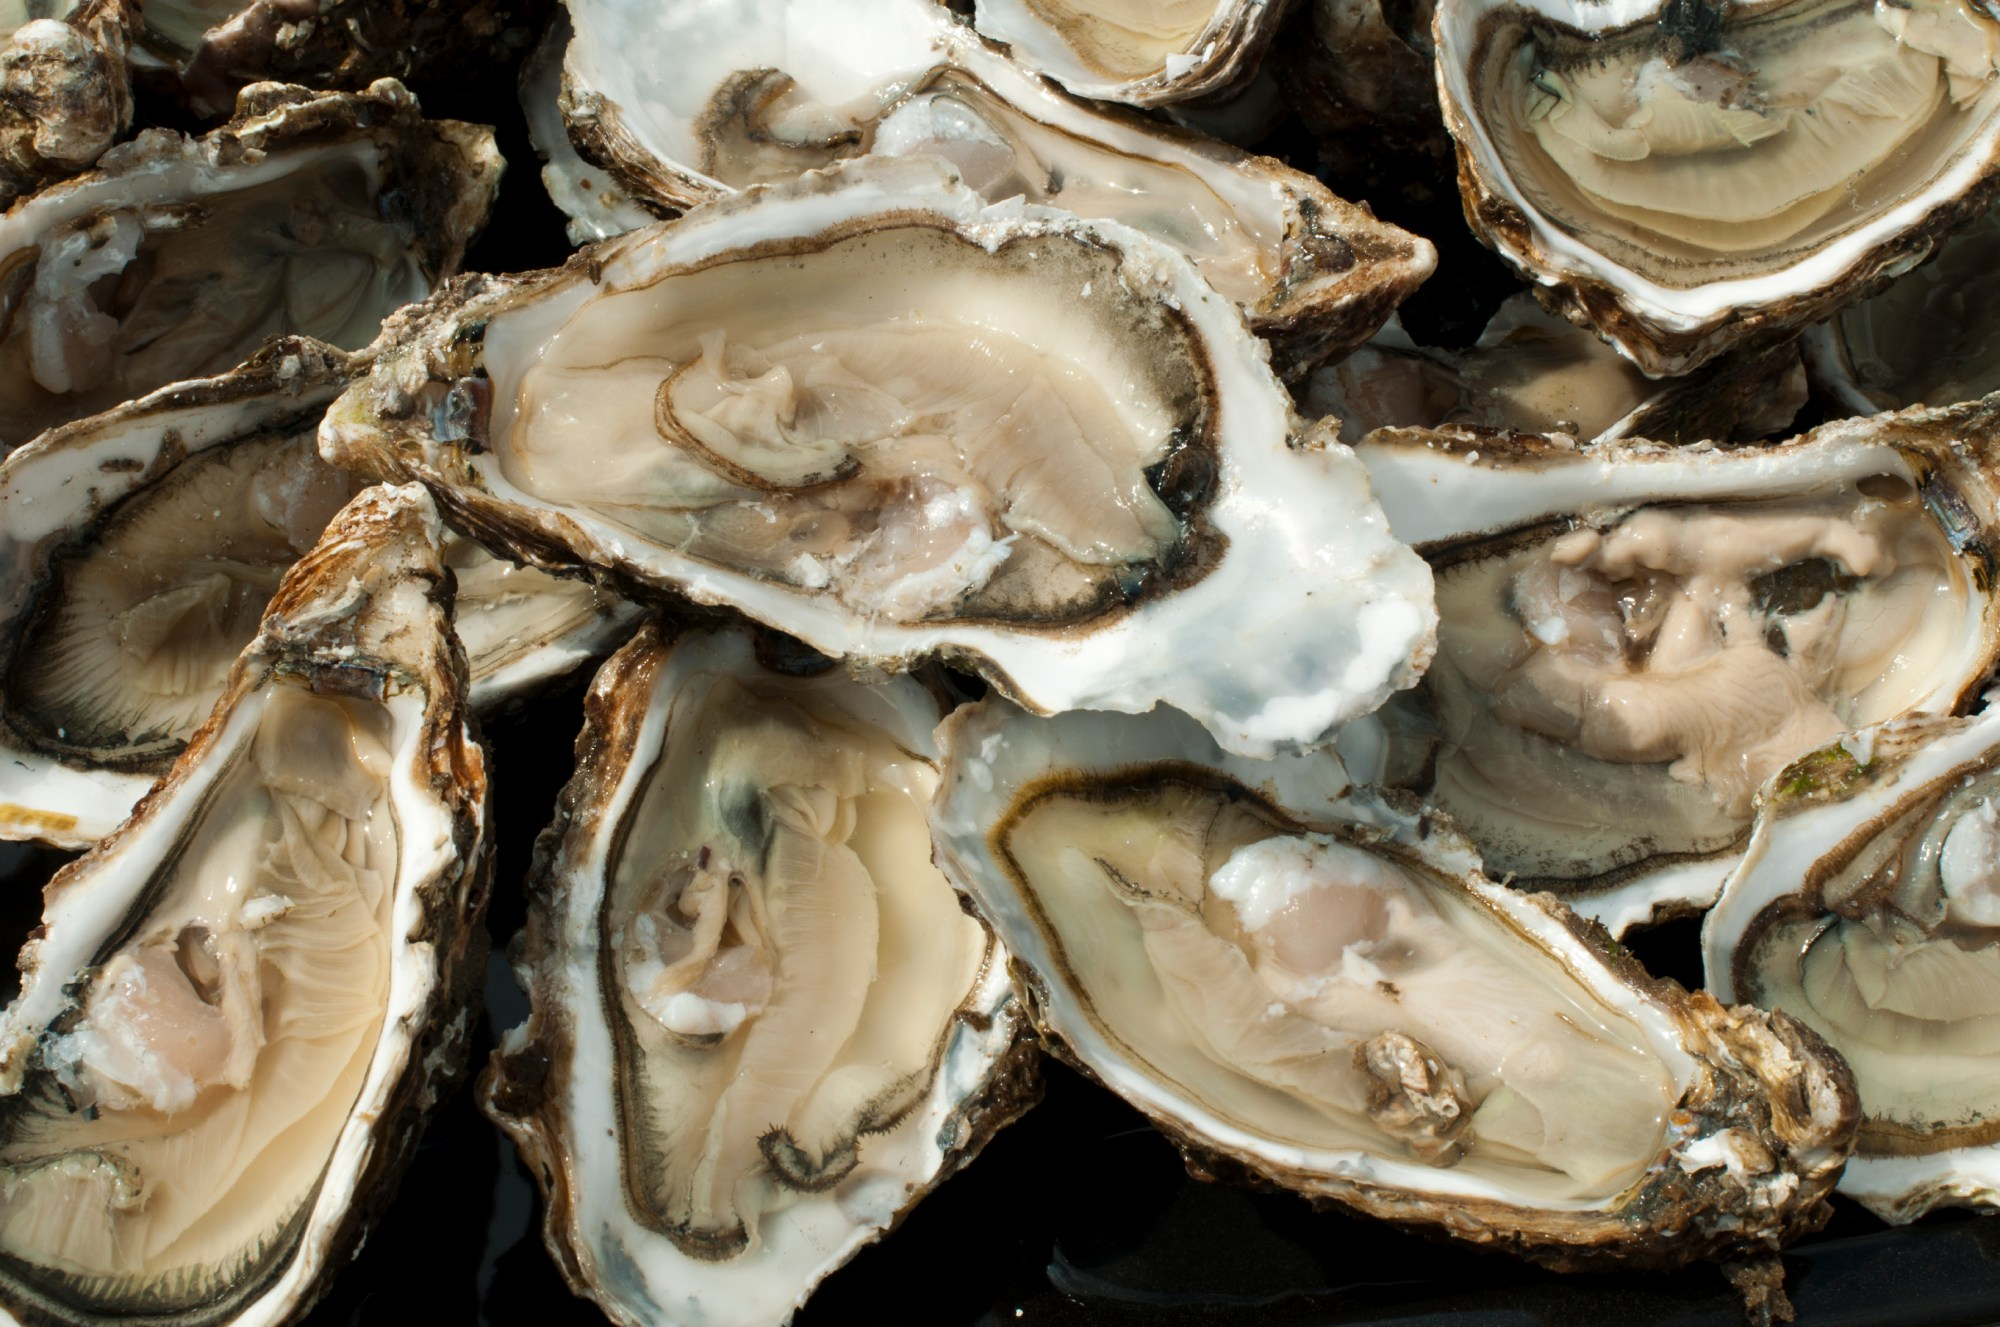 Oysters on a silver platter_287344